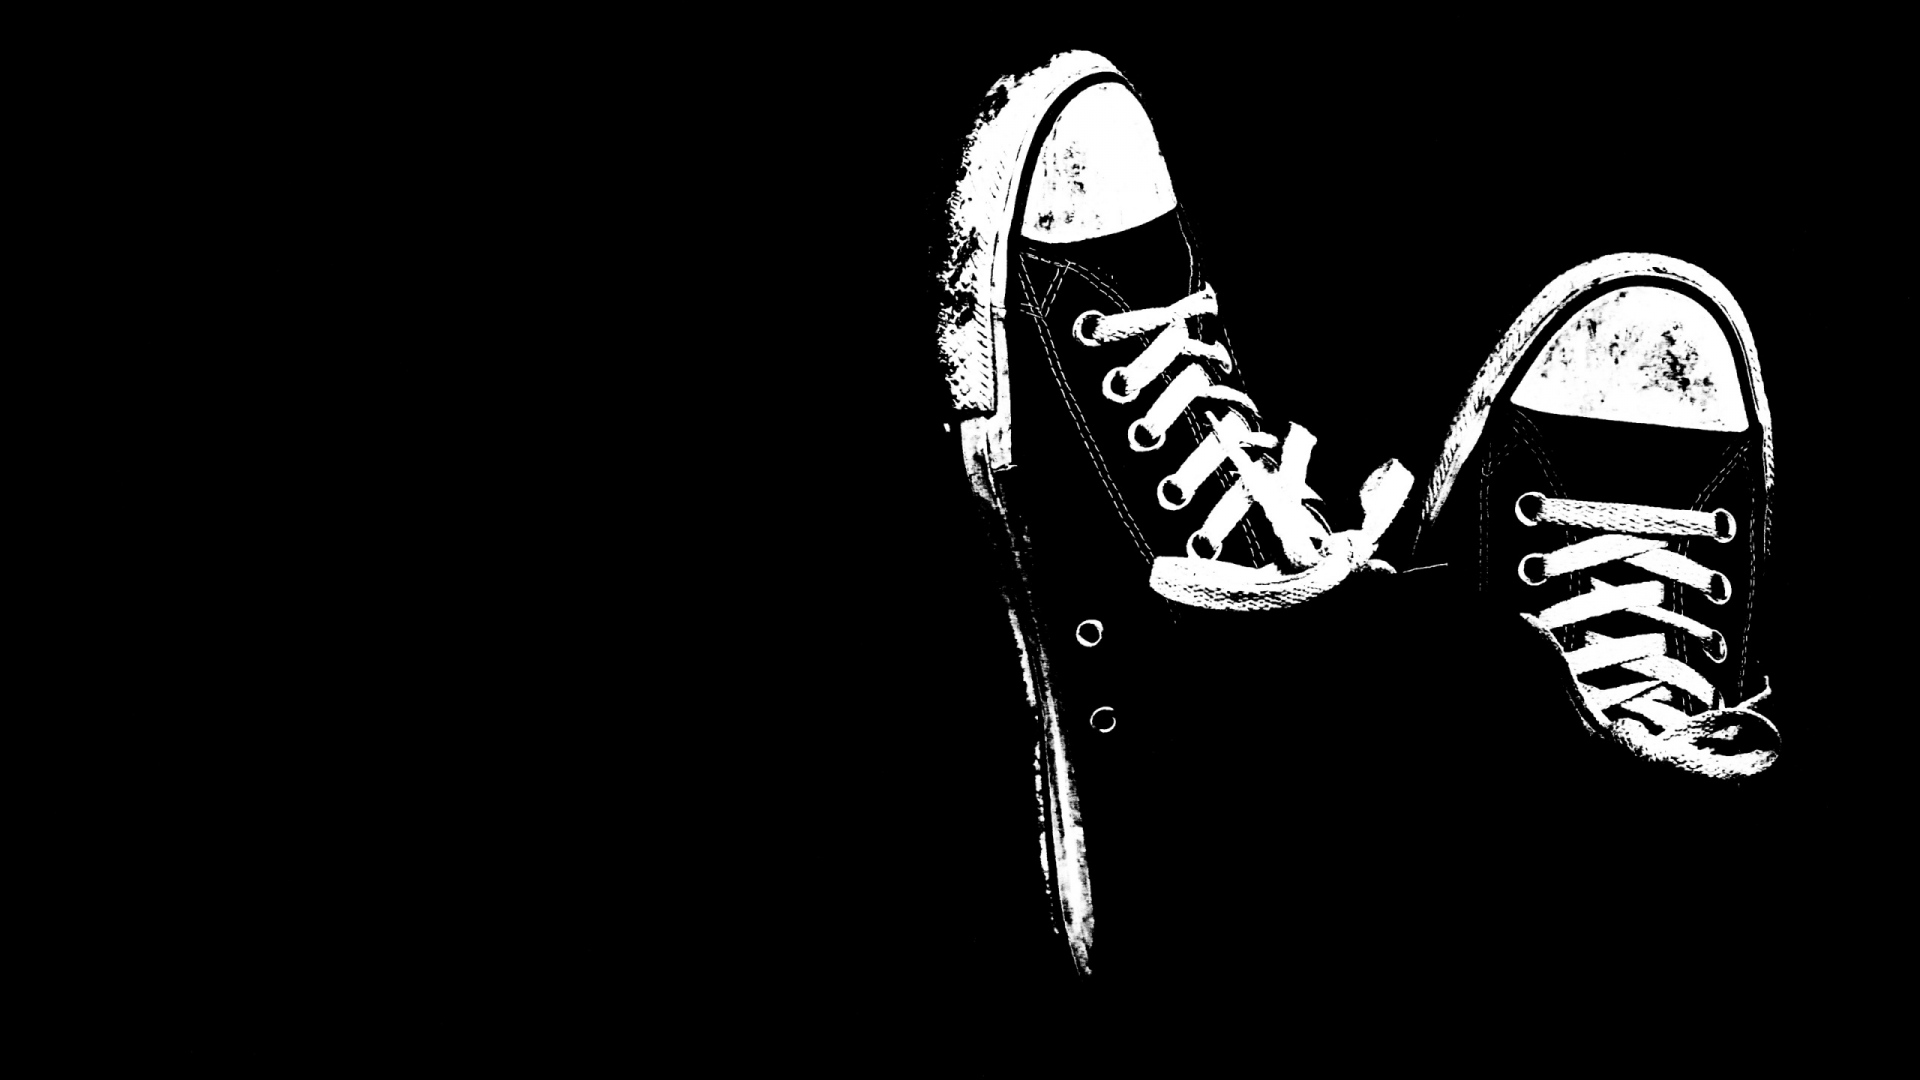 Download wallpaper 1920x1080 shoes black full hd 1080p hd background get the latest shoes black news pictures and videos and learn all about shoes black from wallpapers4u your wallpaper news source voltagebd Choice Image